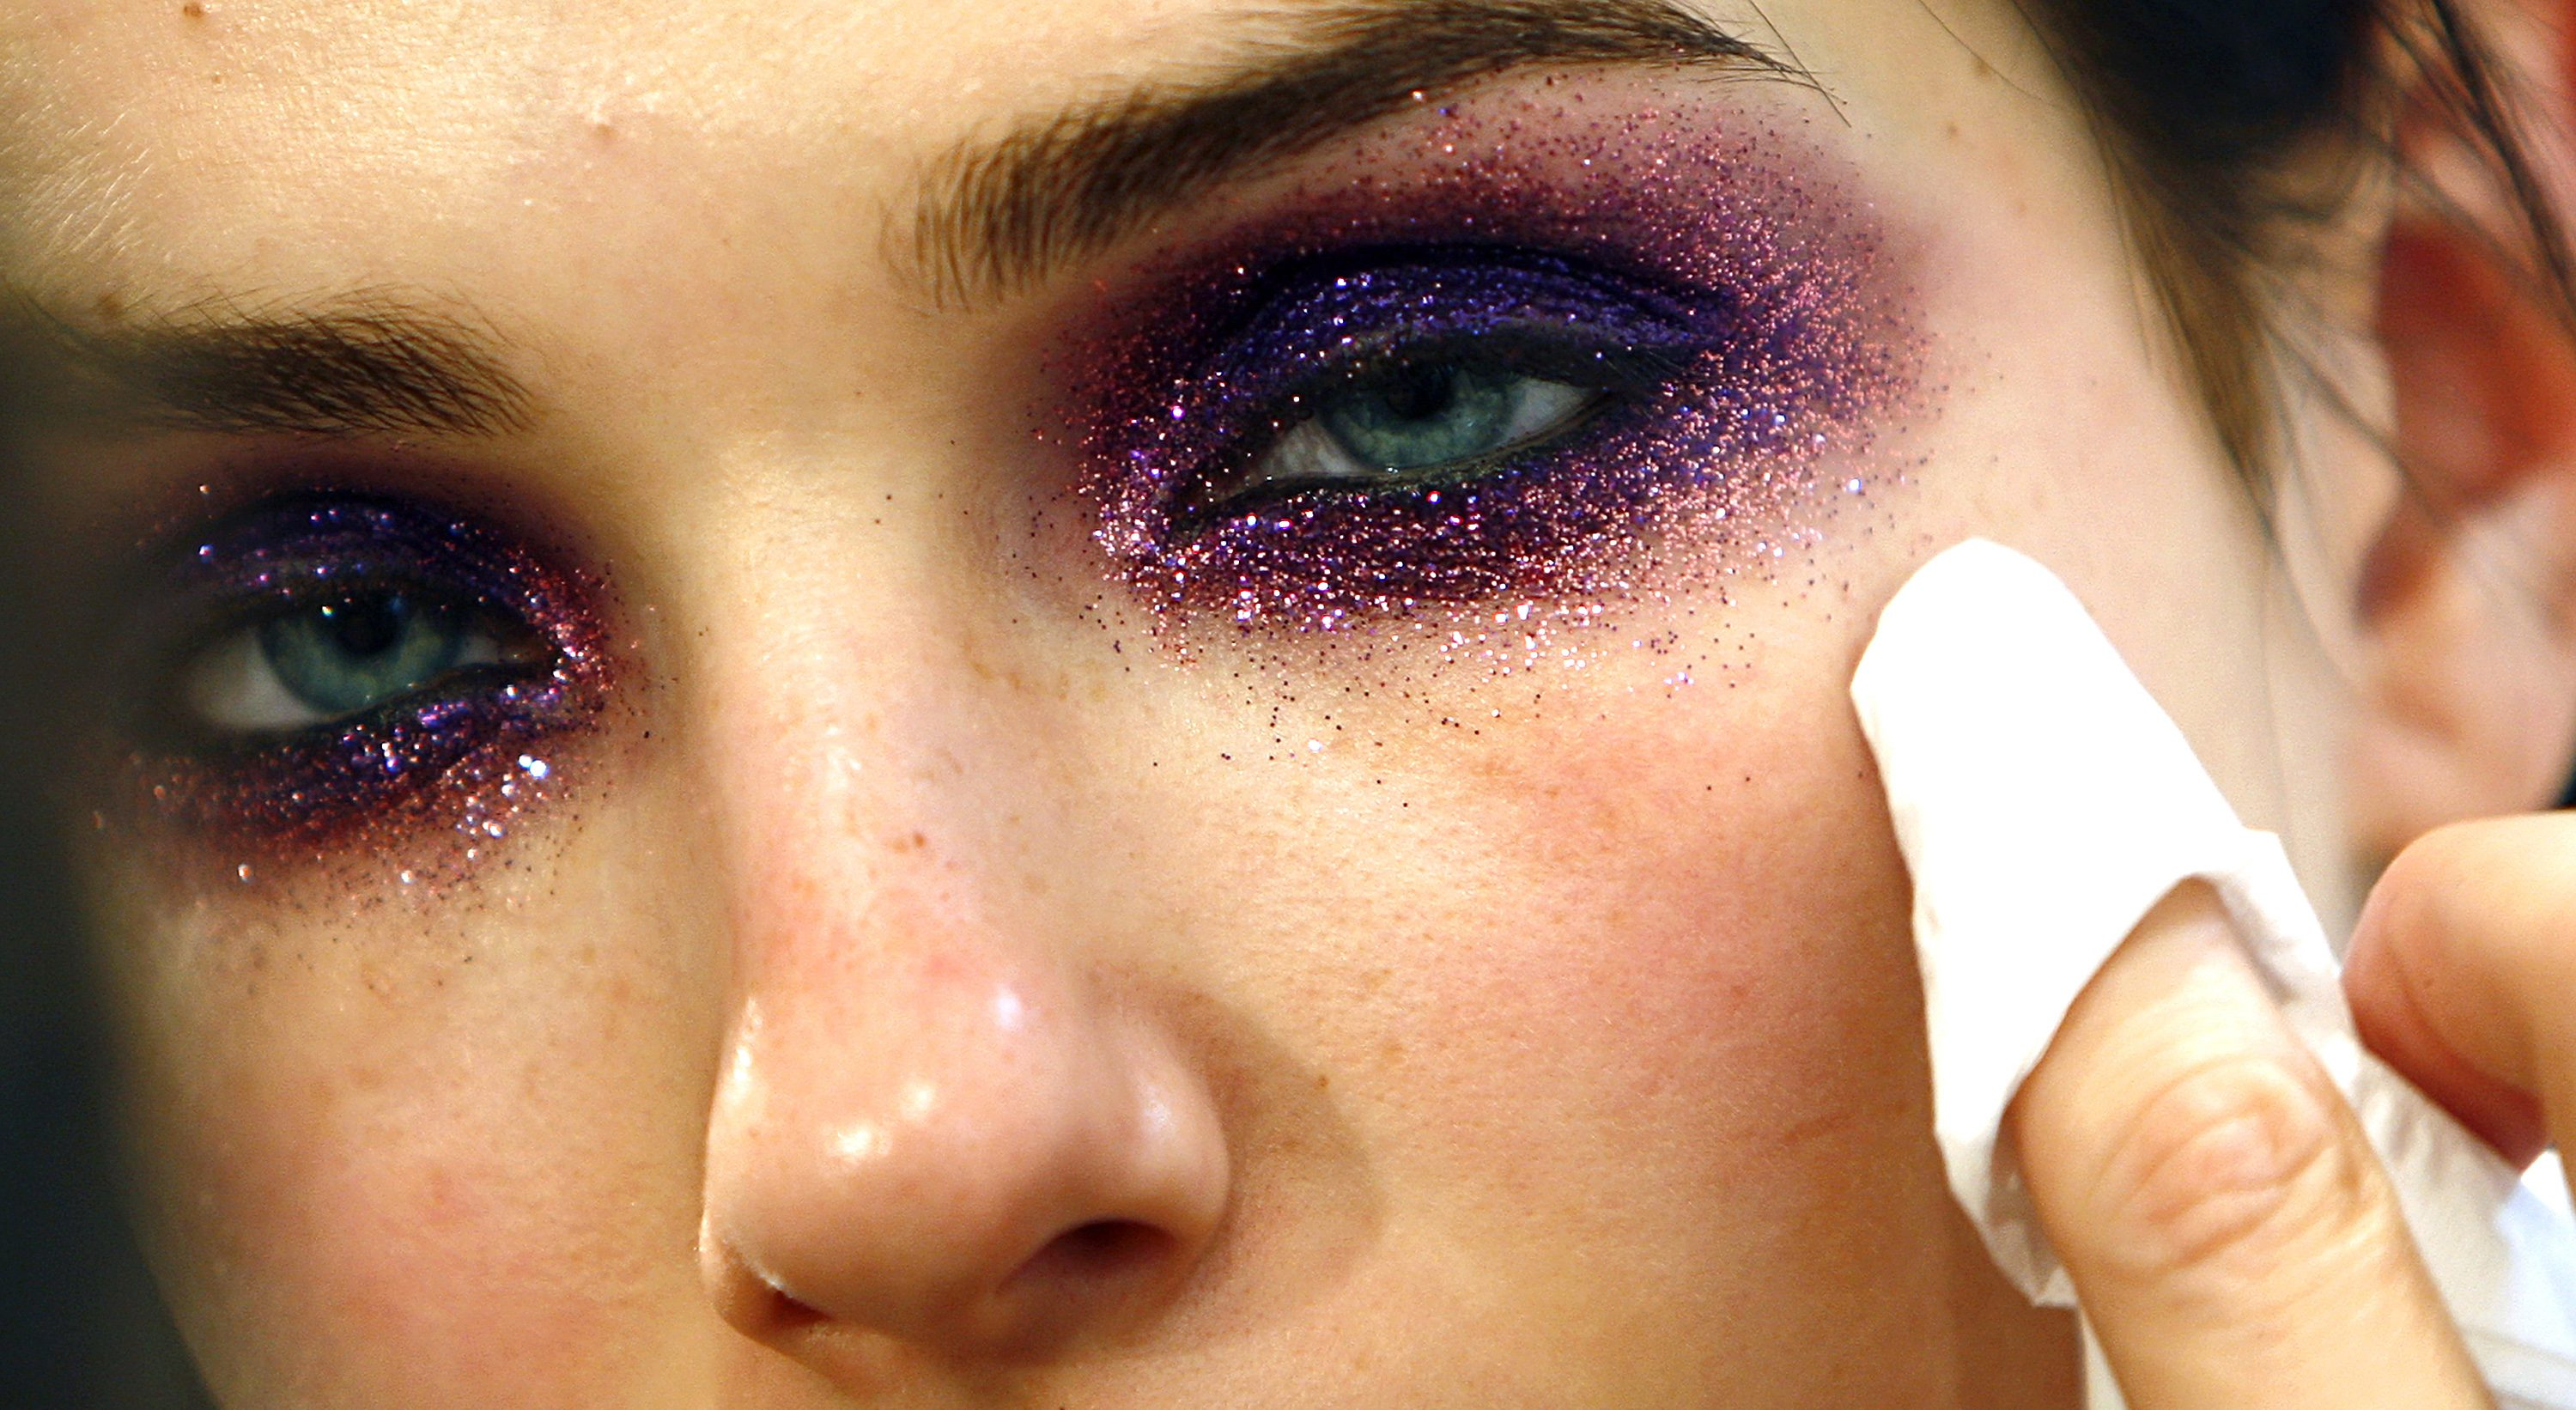 A model has make-up applied on her backstage